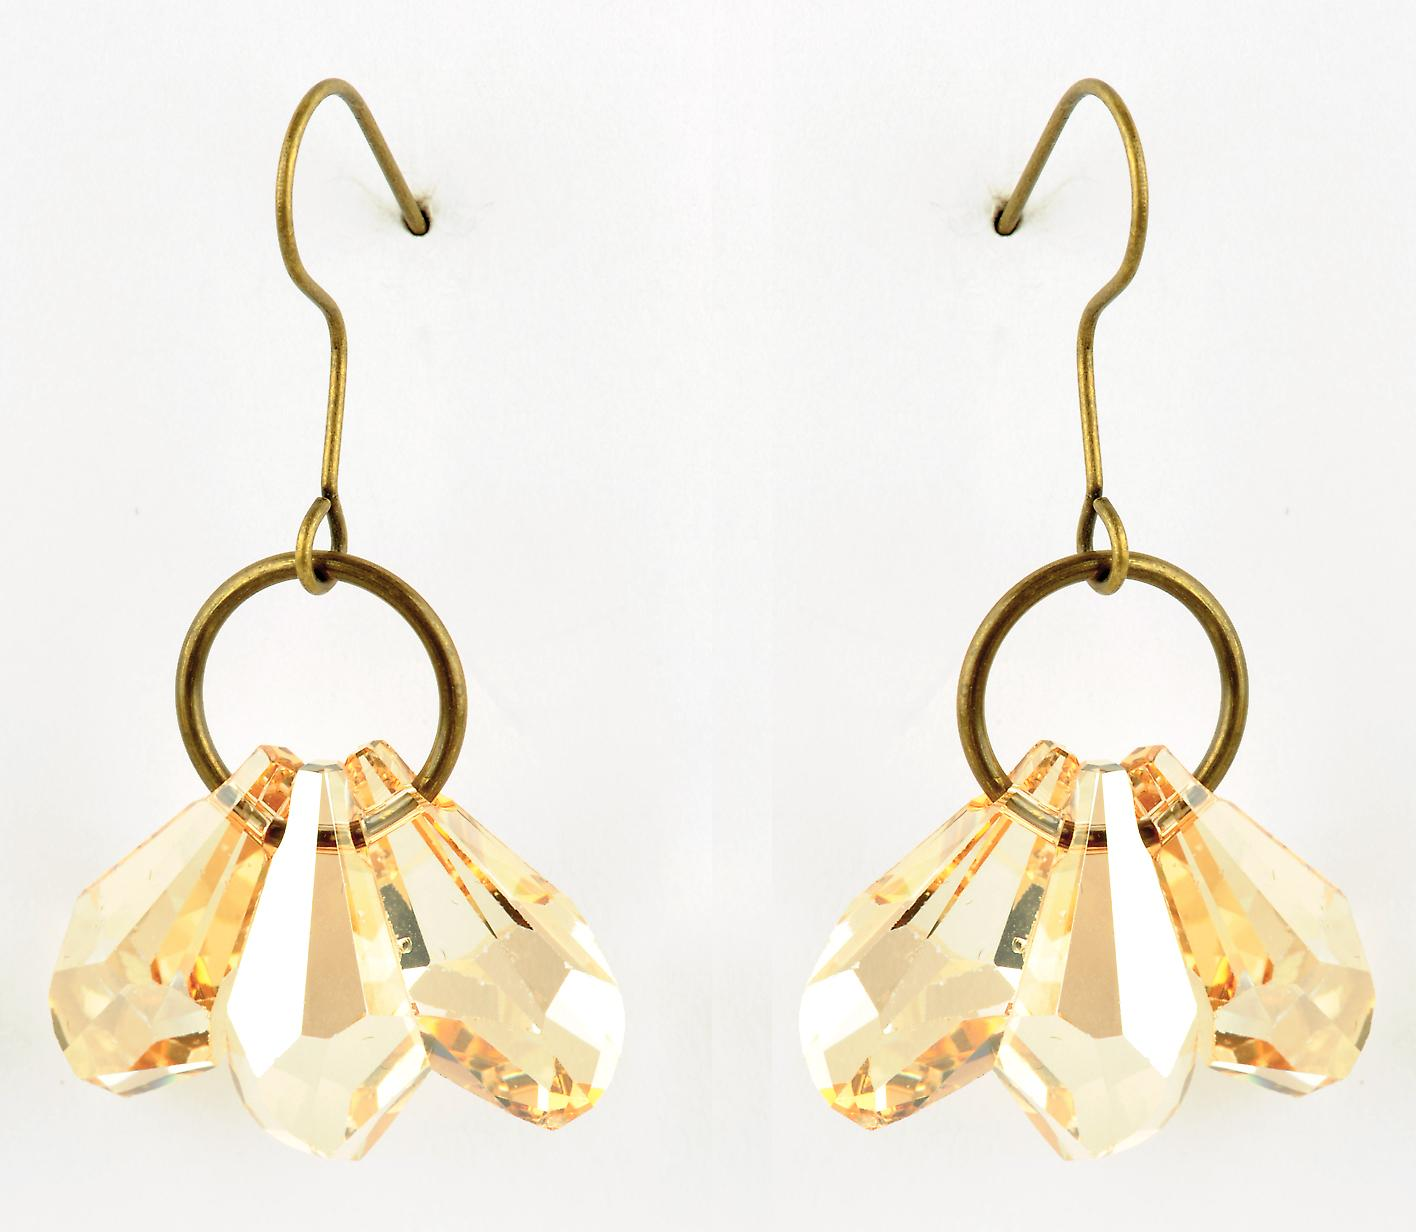 Waooh - jewelry - WJ0785 - earrings with Swarovski yellow - mount colour gold rhinestones